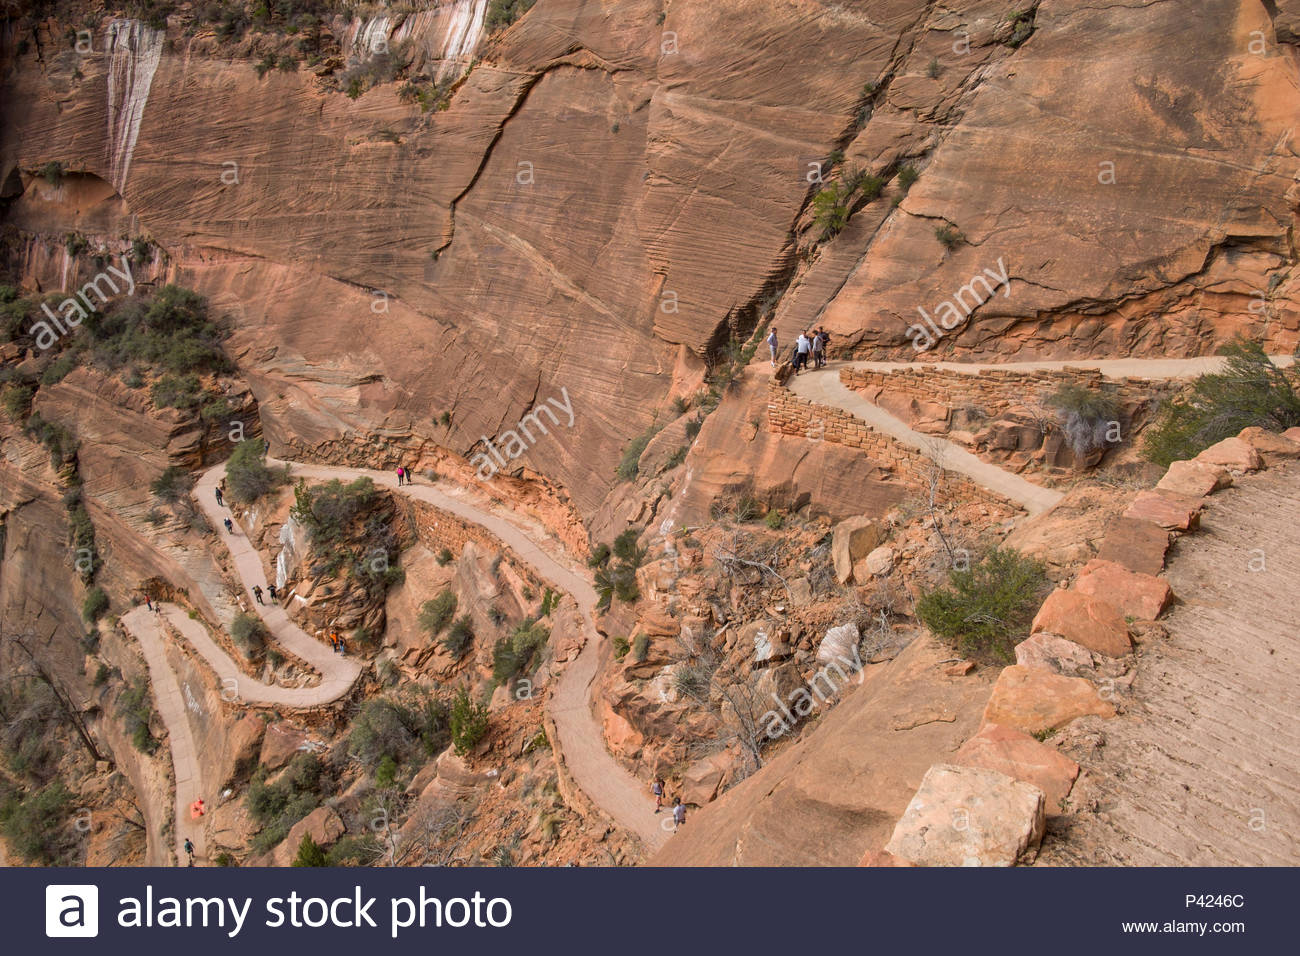 Looking down at the Walter's Wiggles portion of the West Rim Trail consisting of a series of 21 steep switchbacks carved into the sheer cliff face, Zi Stock Photo